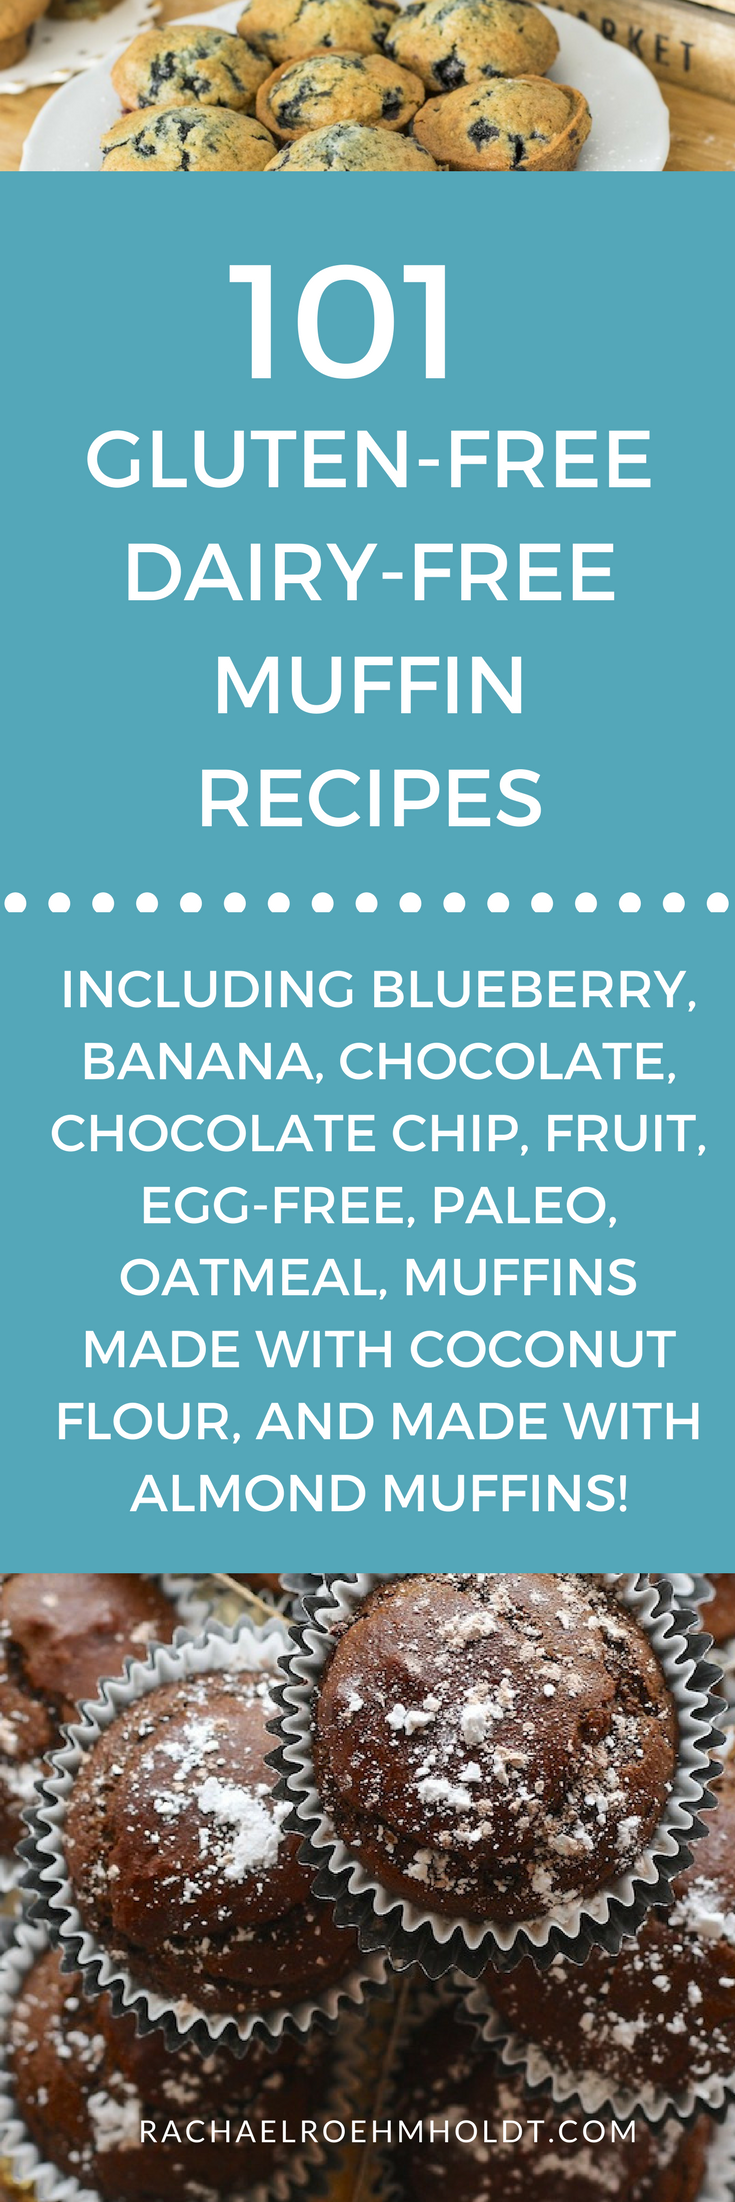 101 Gluten-free Dairy-free Muffin Recipes. Included in this recipe roundup are: gluten-free dairy-free blueberry muffins, gluten-free dairy-free banana recipes, gluten-free dairy-free chocolate muffins, gluten-free dairy-free chocolate chip muffins, gluten-free dairy-free fruit muffins, gluten-free dairy-free egg-free muffins, gluten-free dairy-free paleo muffins, gluten-free dairy-free oatmeal muffins, gluten-free dairy-free muffins made with coconut flour, and gluten-free dairy-free muffins made with almond flour recipes. Click through to find tons of recipe inspiration and get access to my free 4-part workshop all about taking on a gluten-free dairy-free diet and lifestyle.